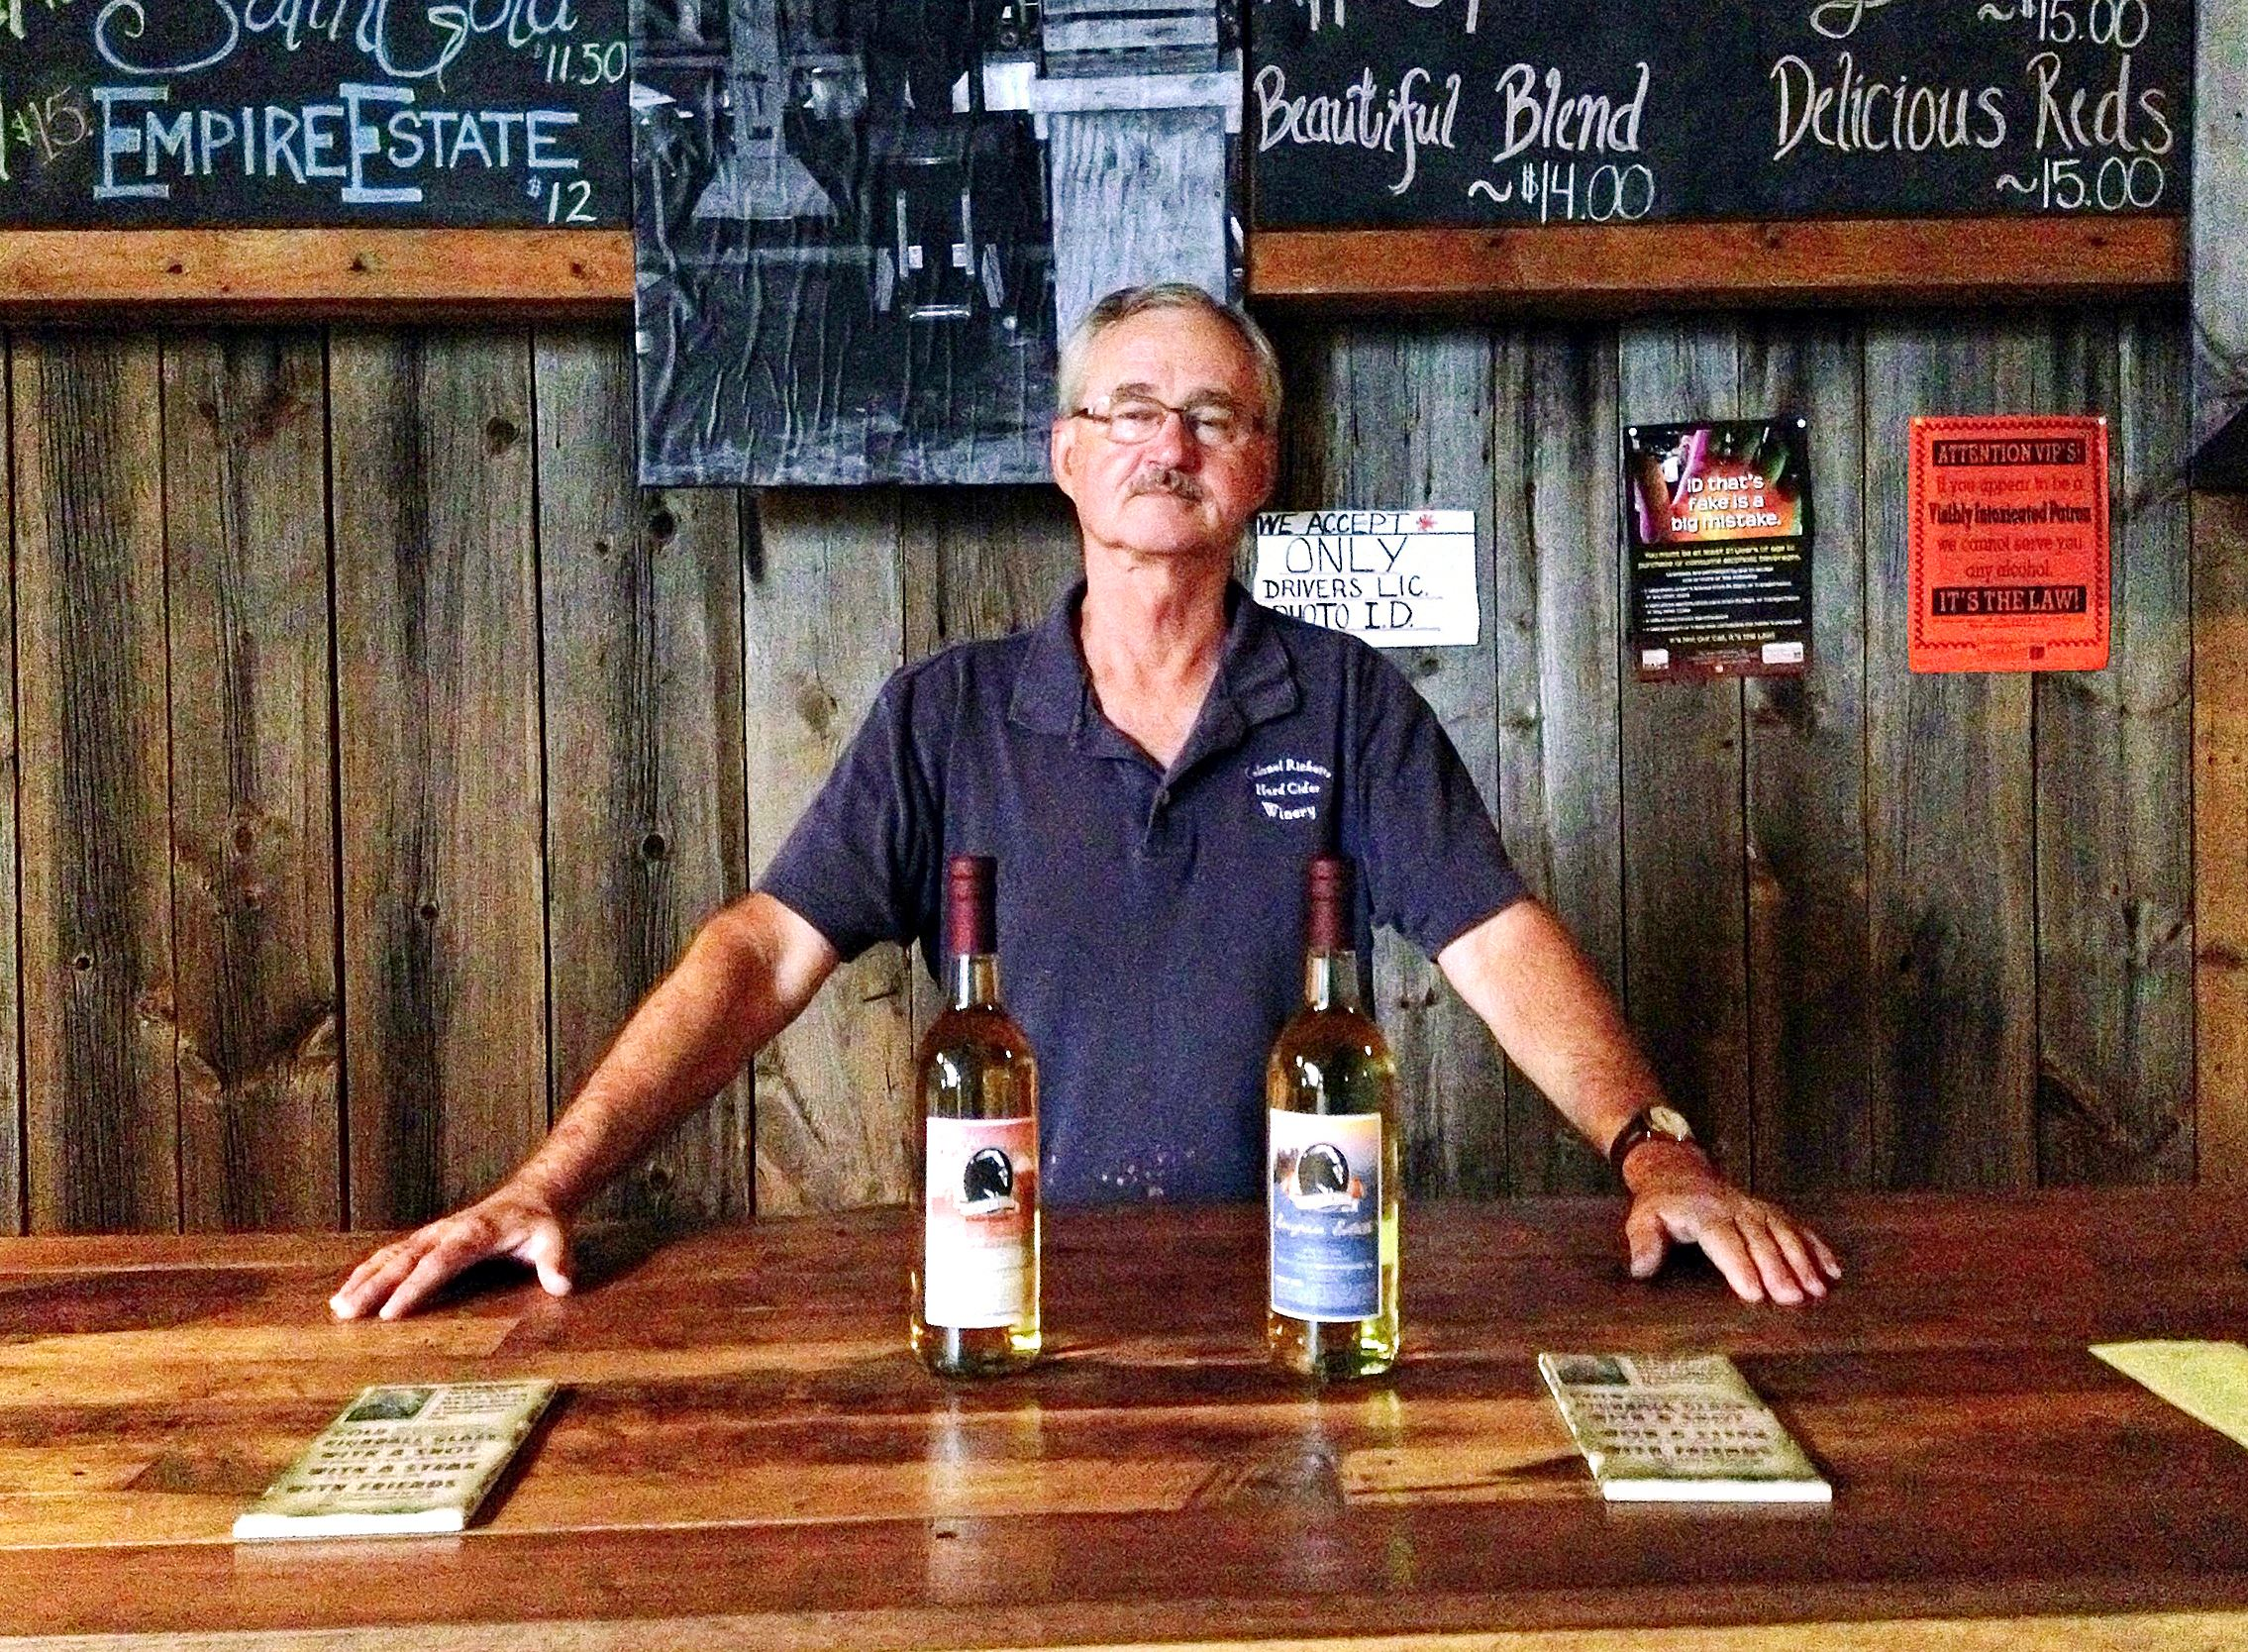 The pressing business of hard cider